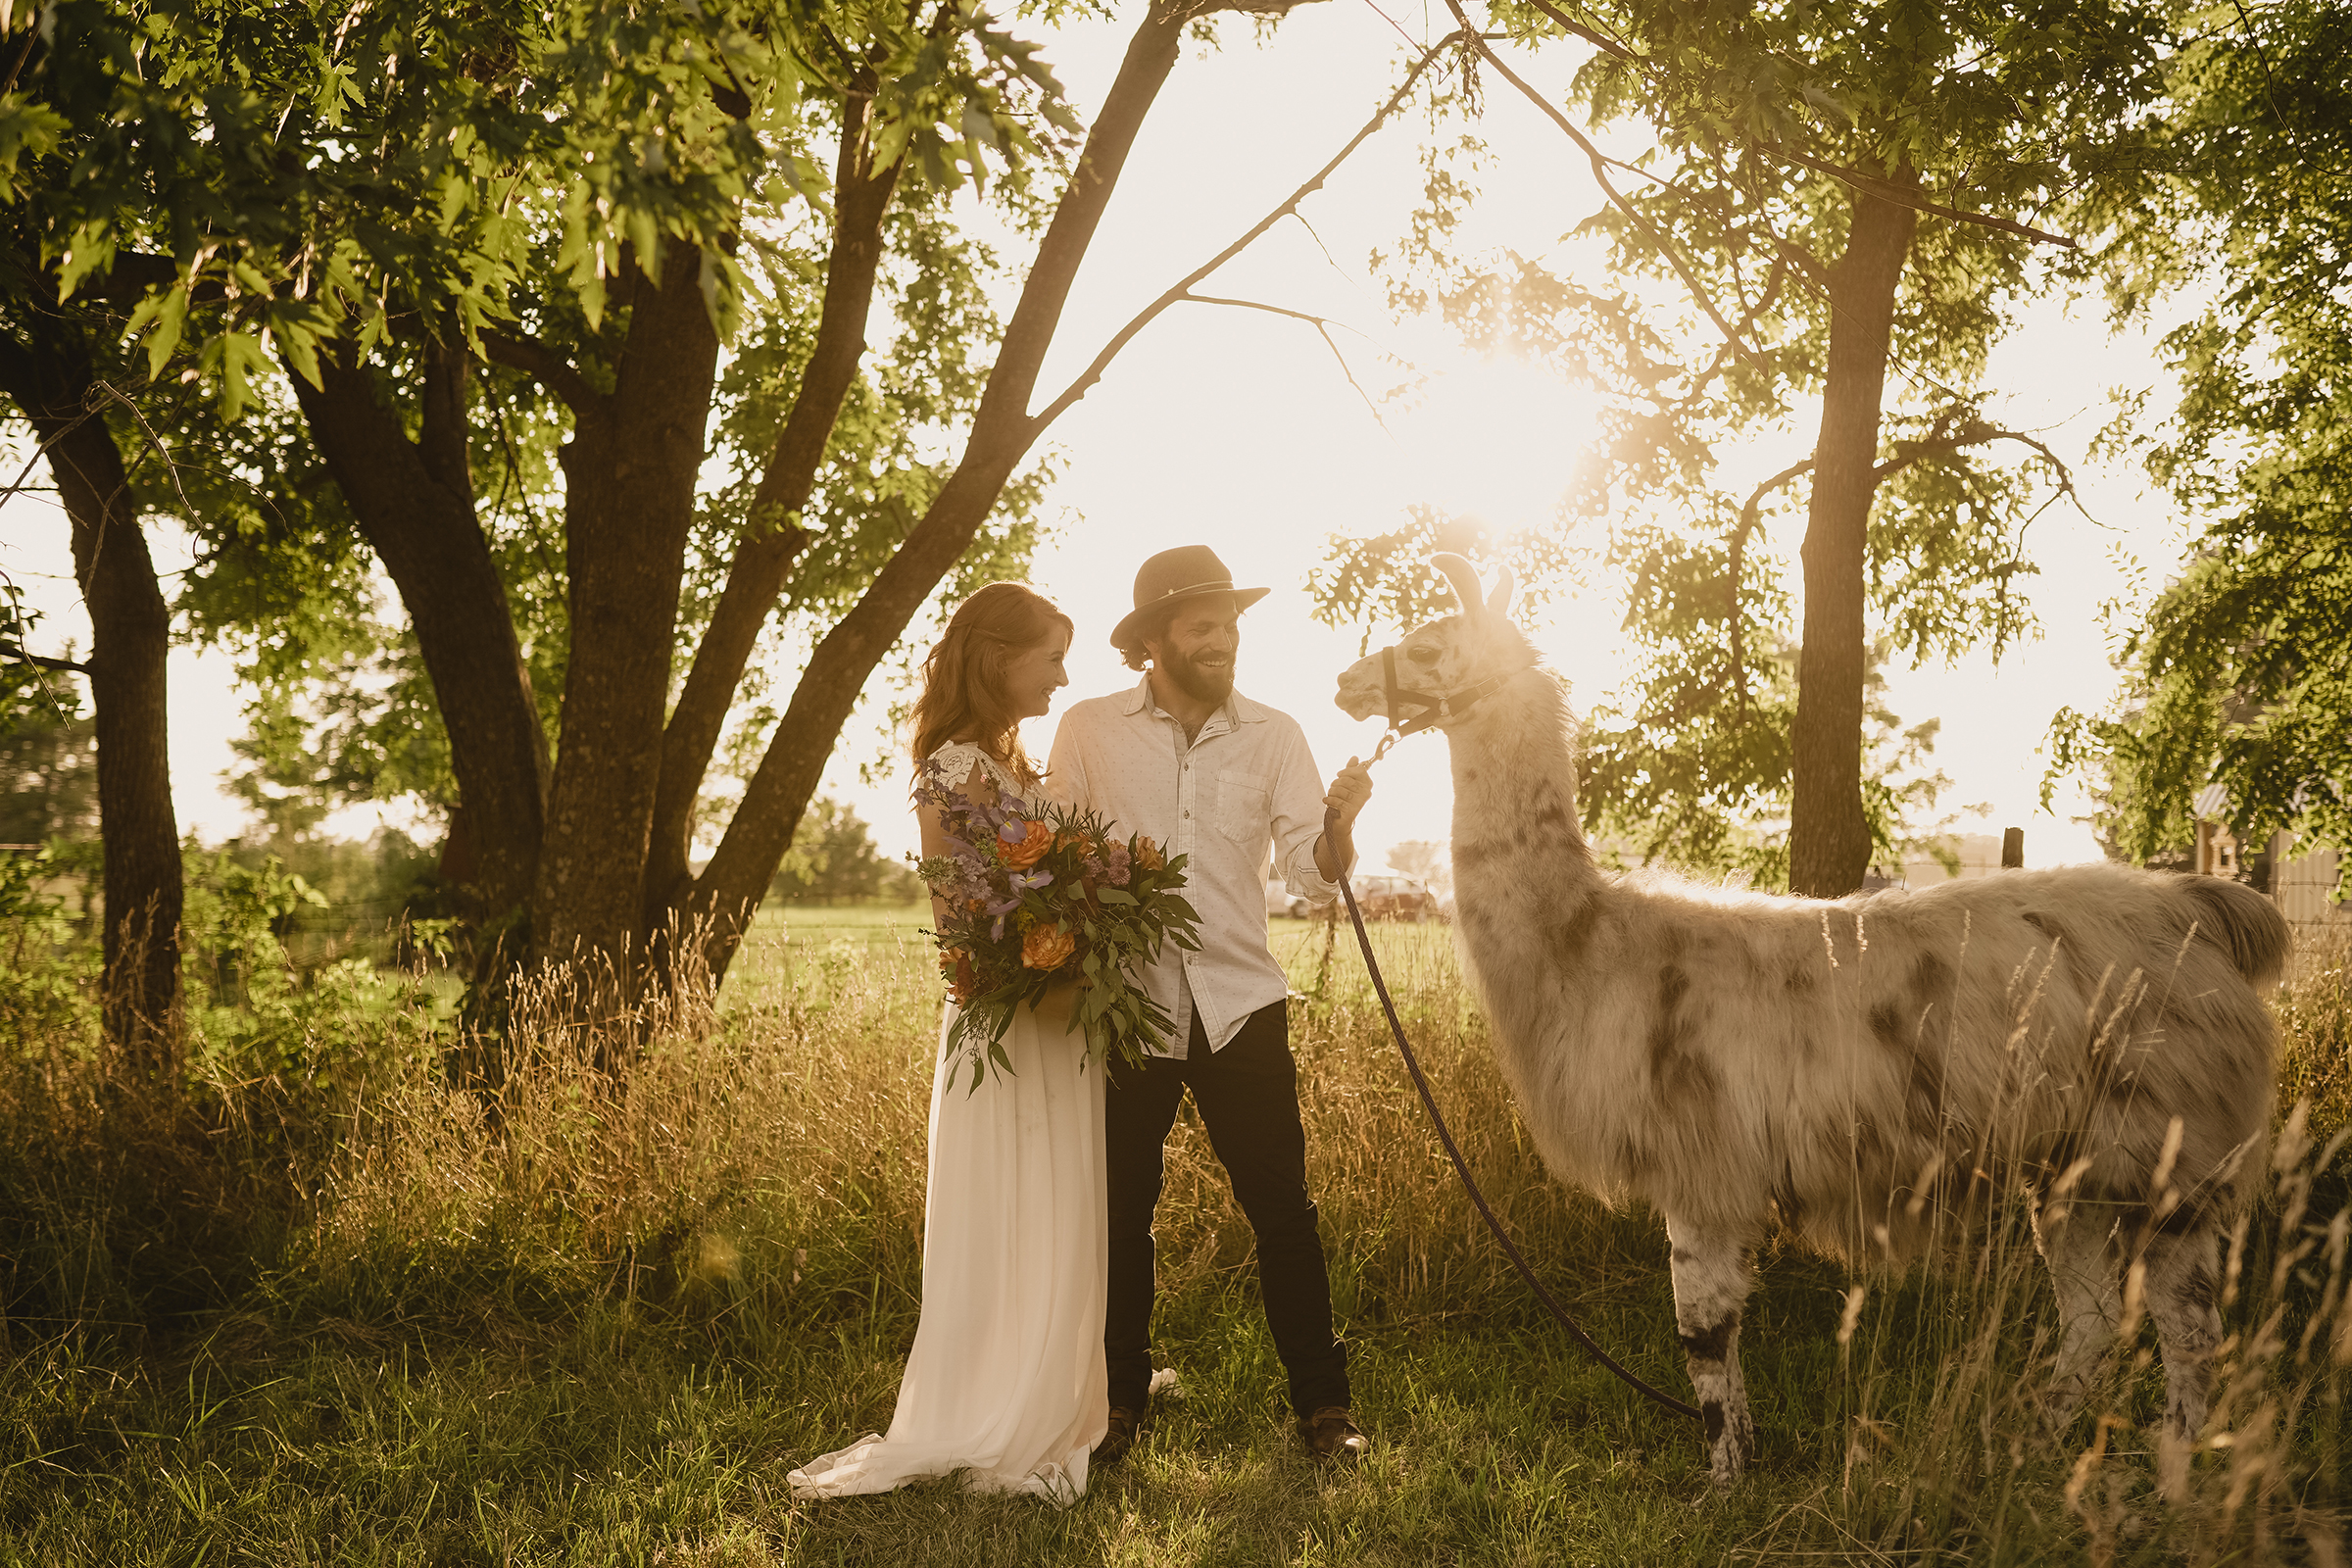 bride-groom-walking-llama-myrtle-mae-iris-aisle-dame-maiden-lavender-blue-floral-raelyn-ramey-photography.jpg